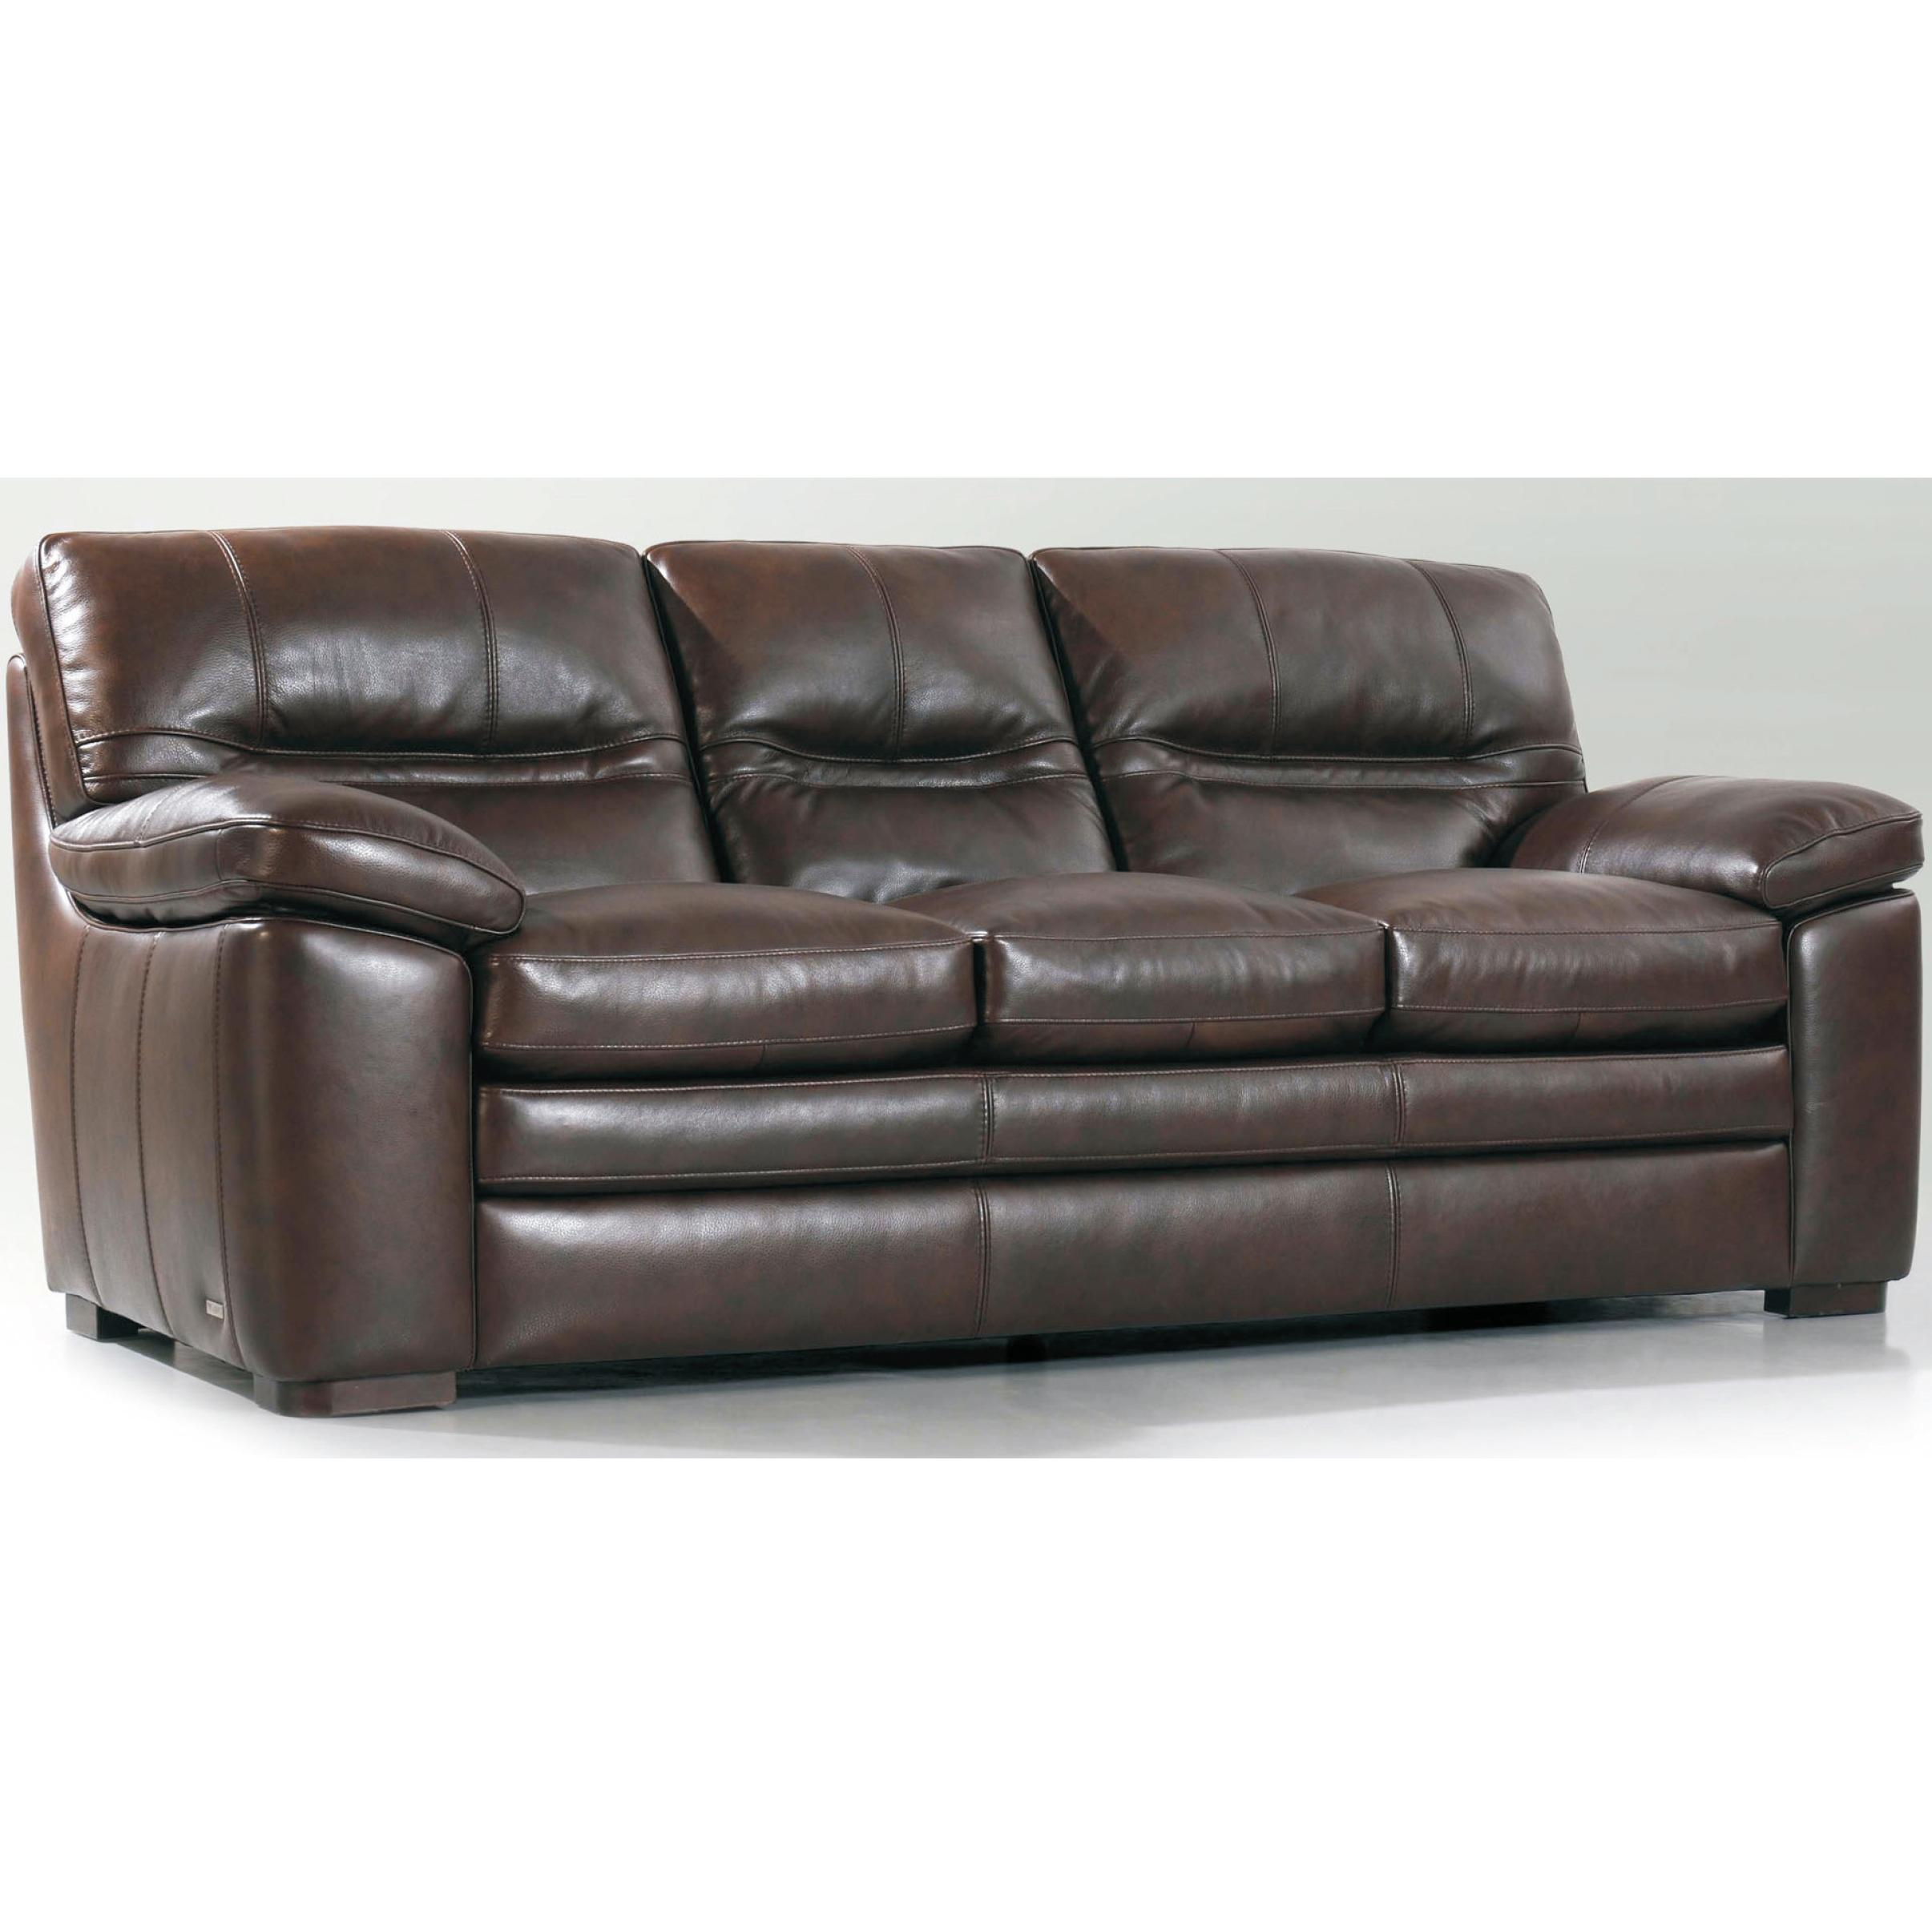 3574 Casual Sofa by Violino at Furniture Superstore - Rochester, MN